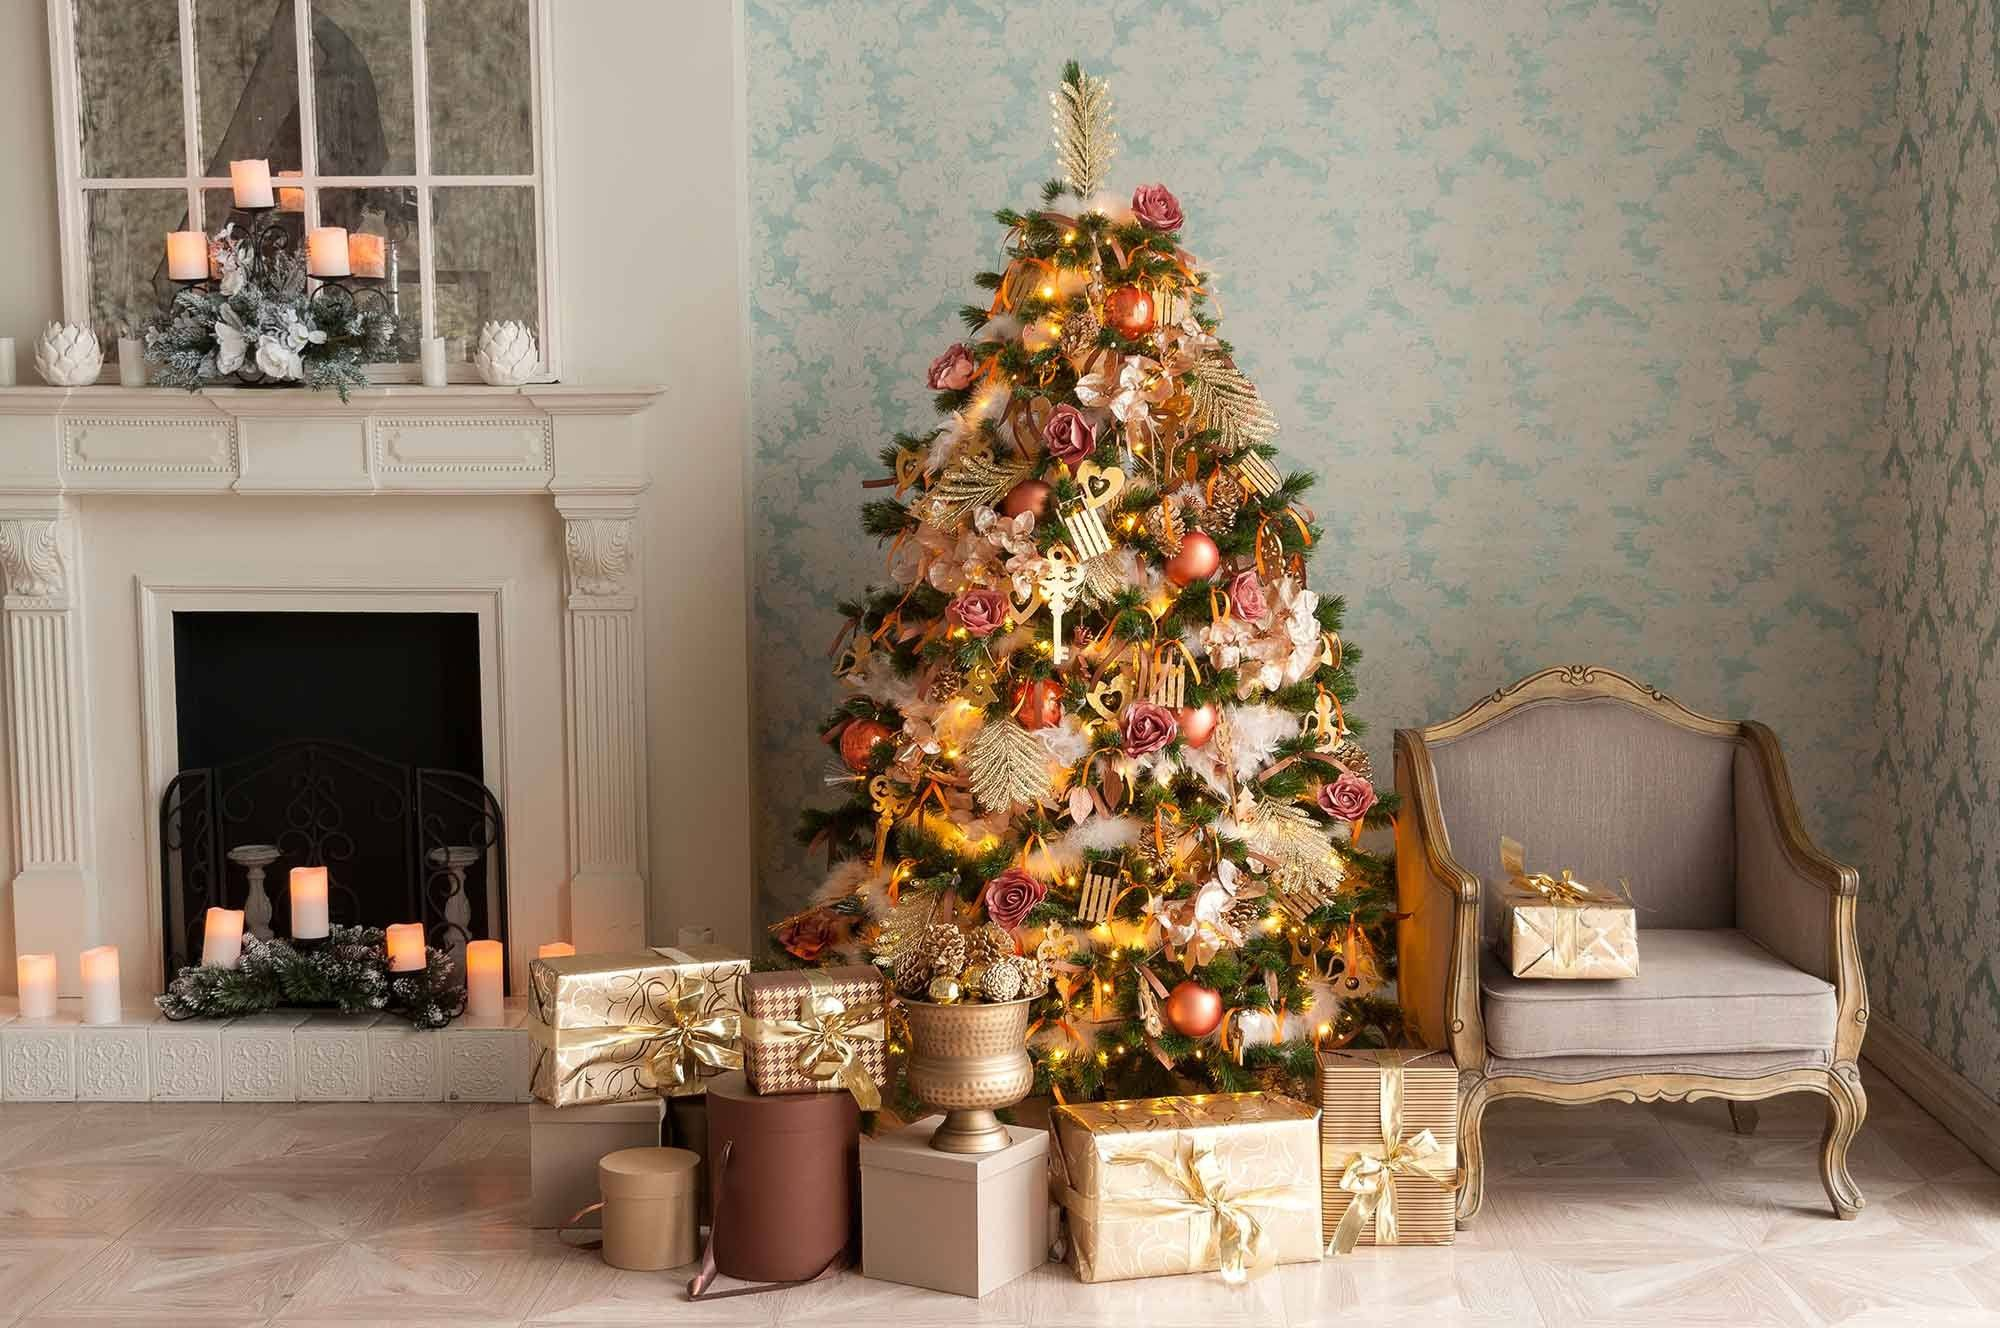 Christmas Tree And Fireplace Background For Christmas Backdrop